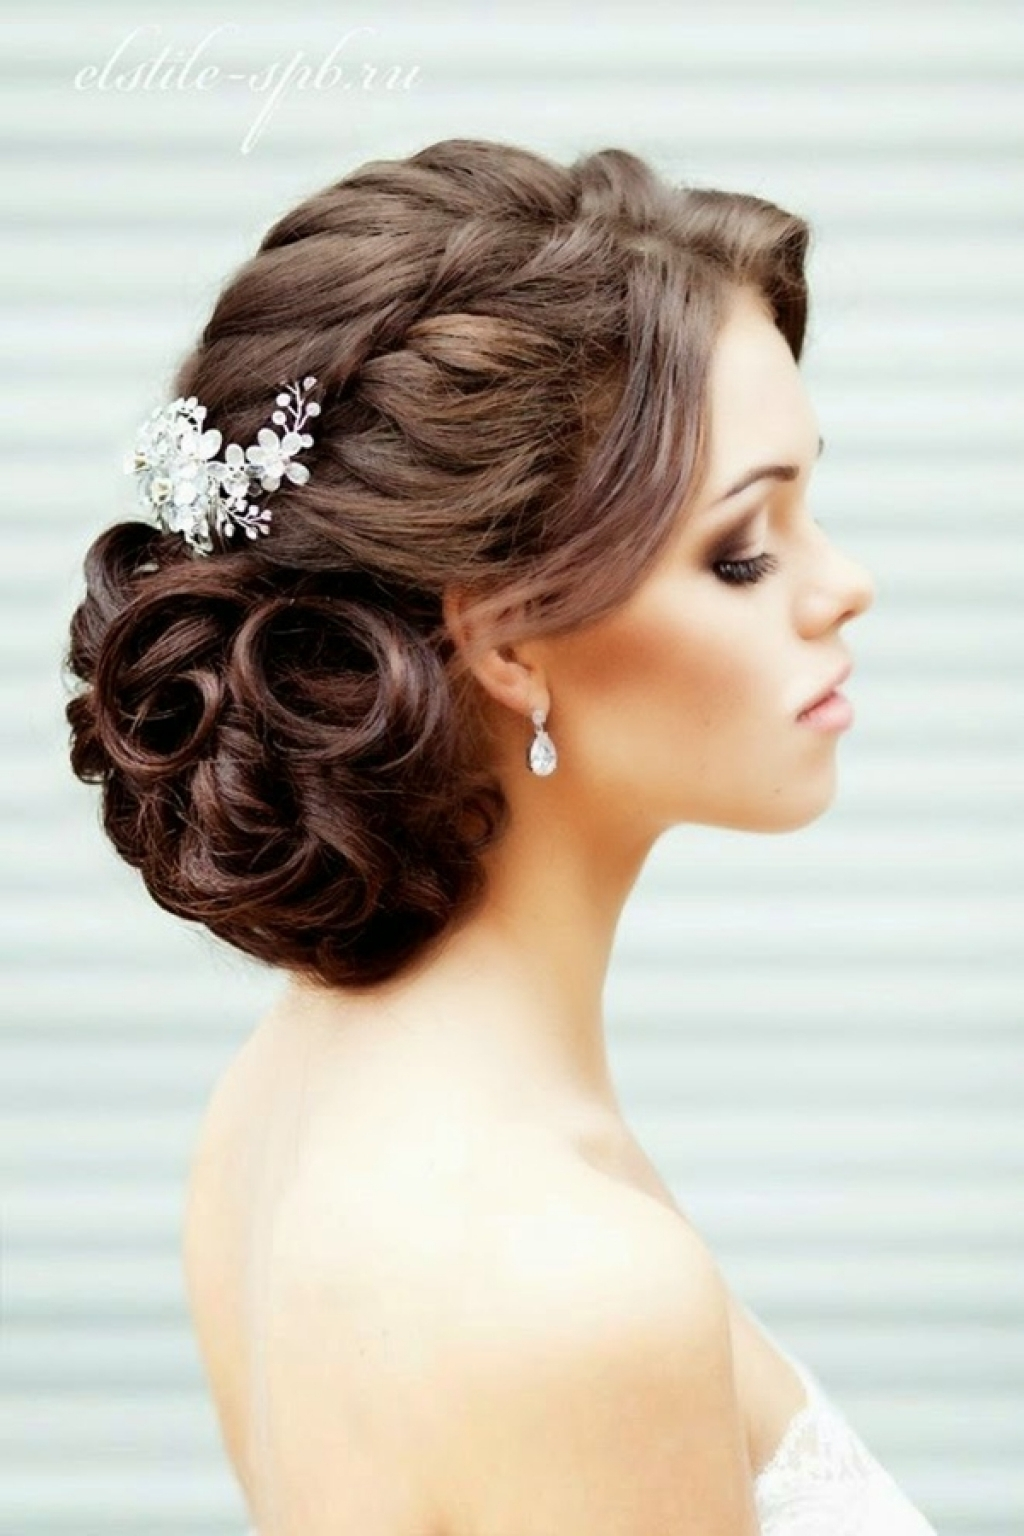 3 Easy Updo Hairstyles For Long Hair Hairstyle Tips Bridesmaid Pertaining To Wedding Hair Updo Hairstyles (View 1 of 15)